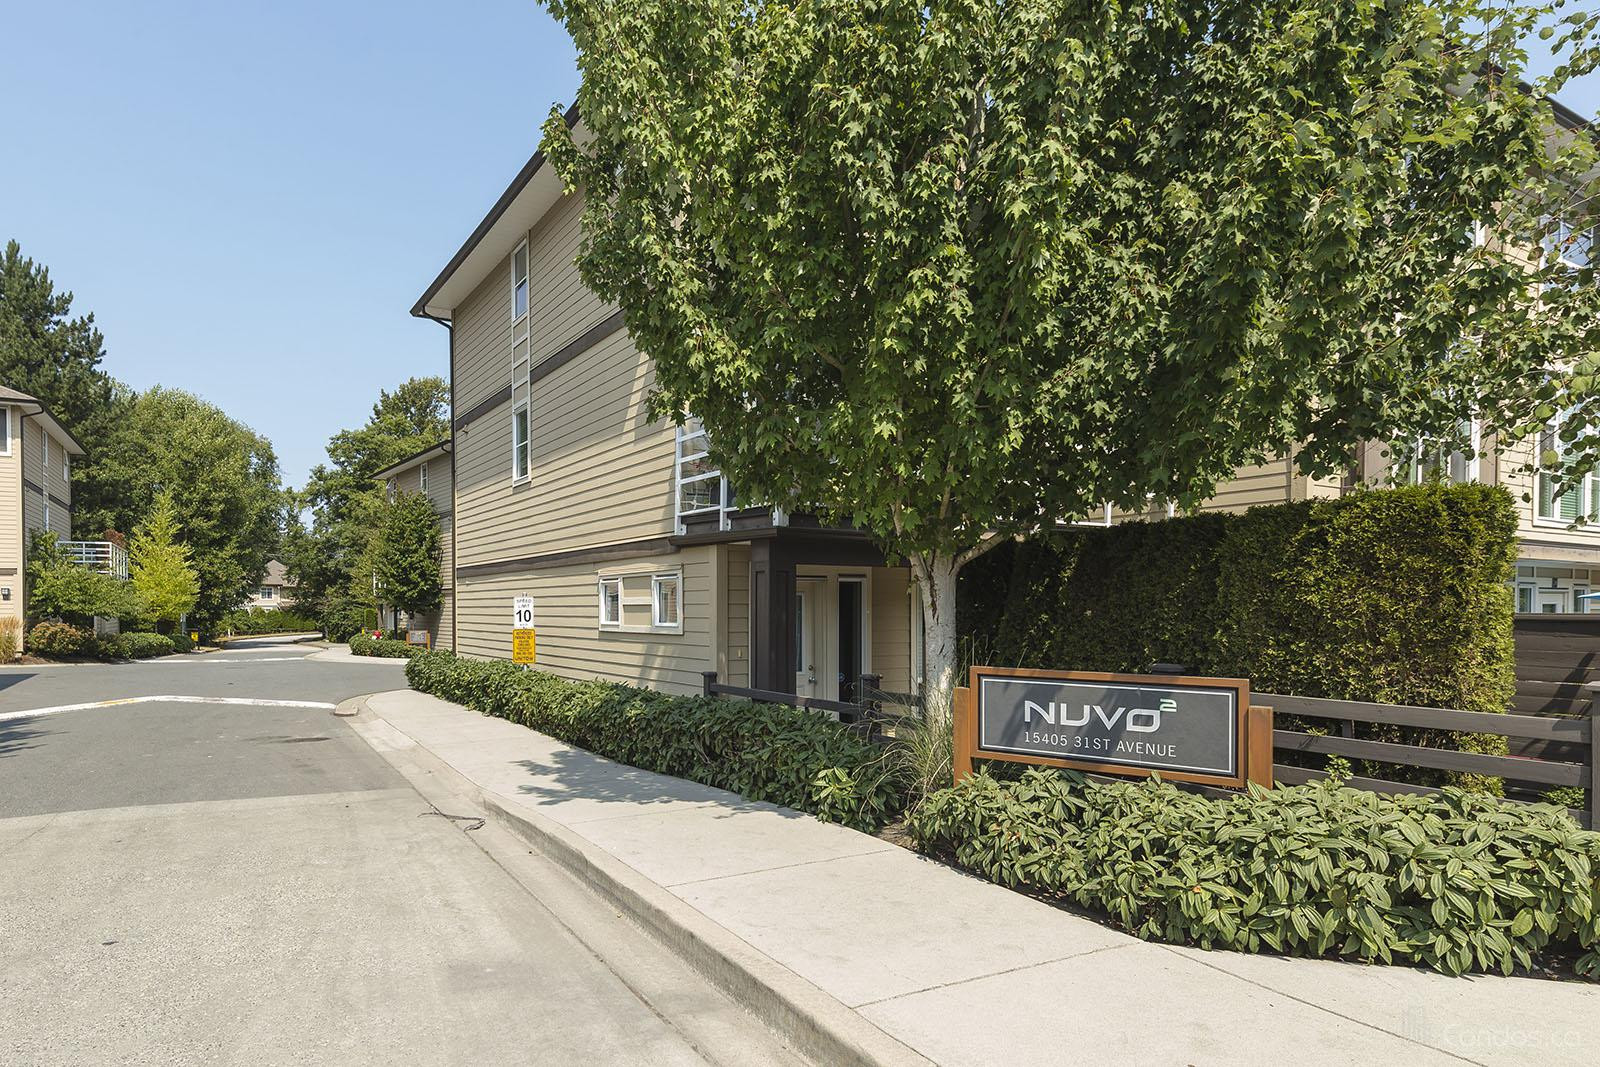 Nuvo 2 at 15405 31st Ave, Surrey 1